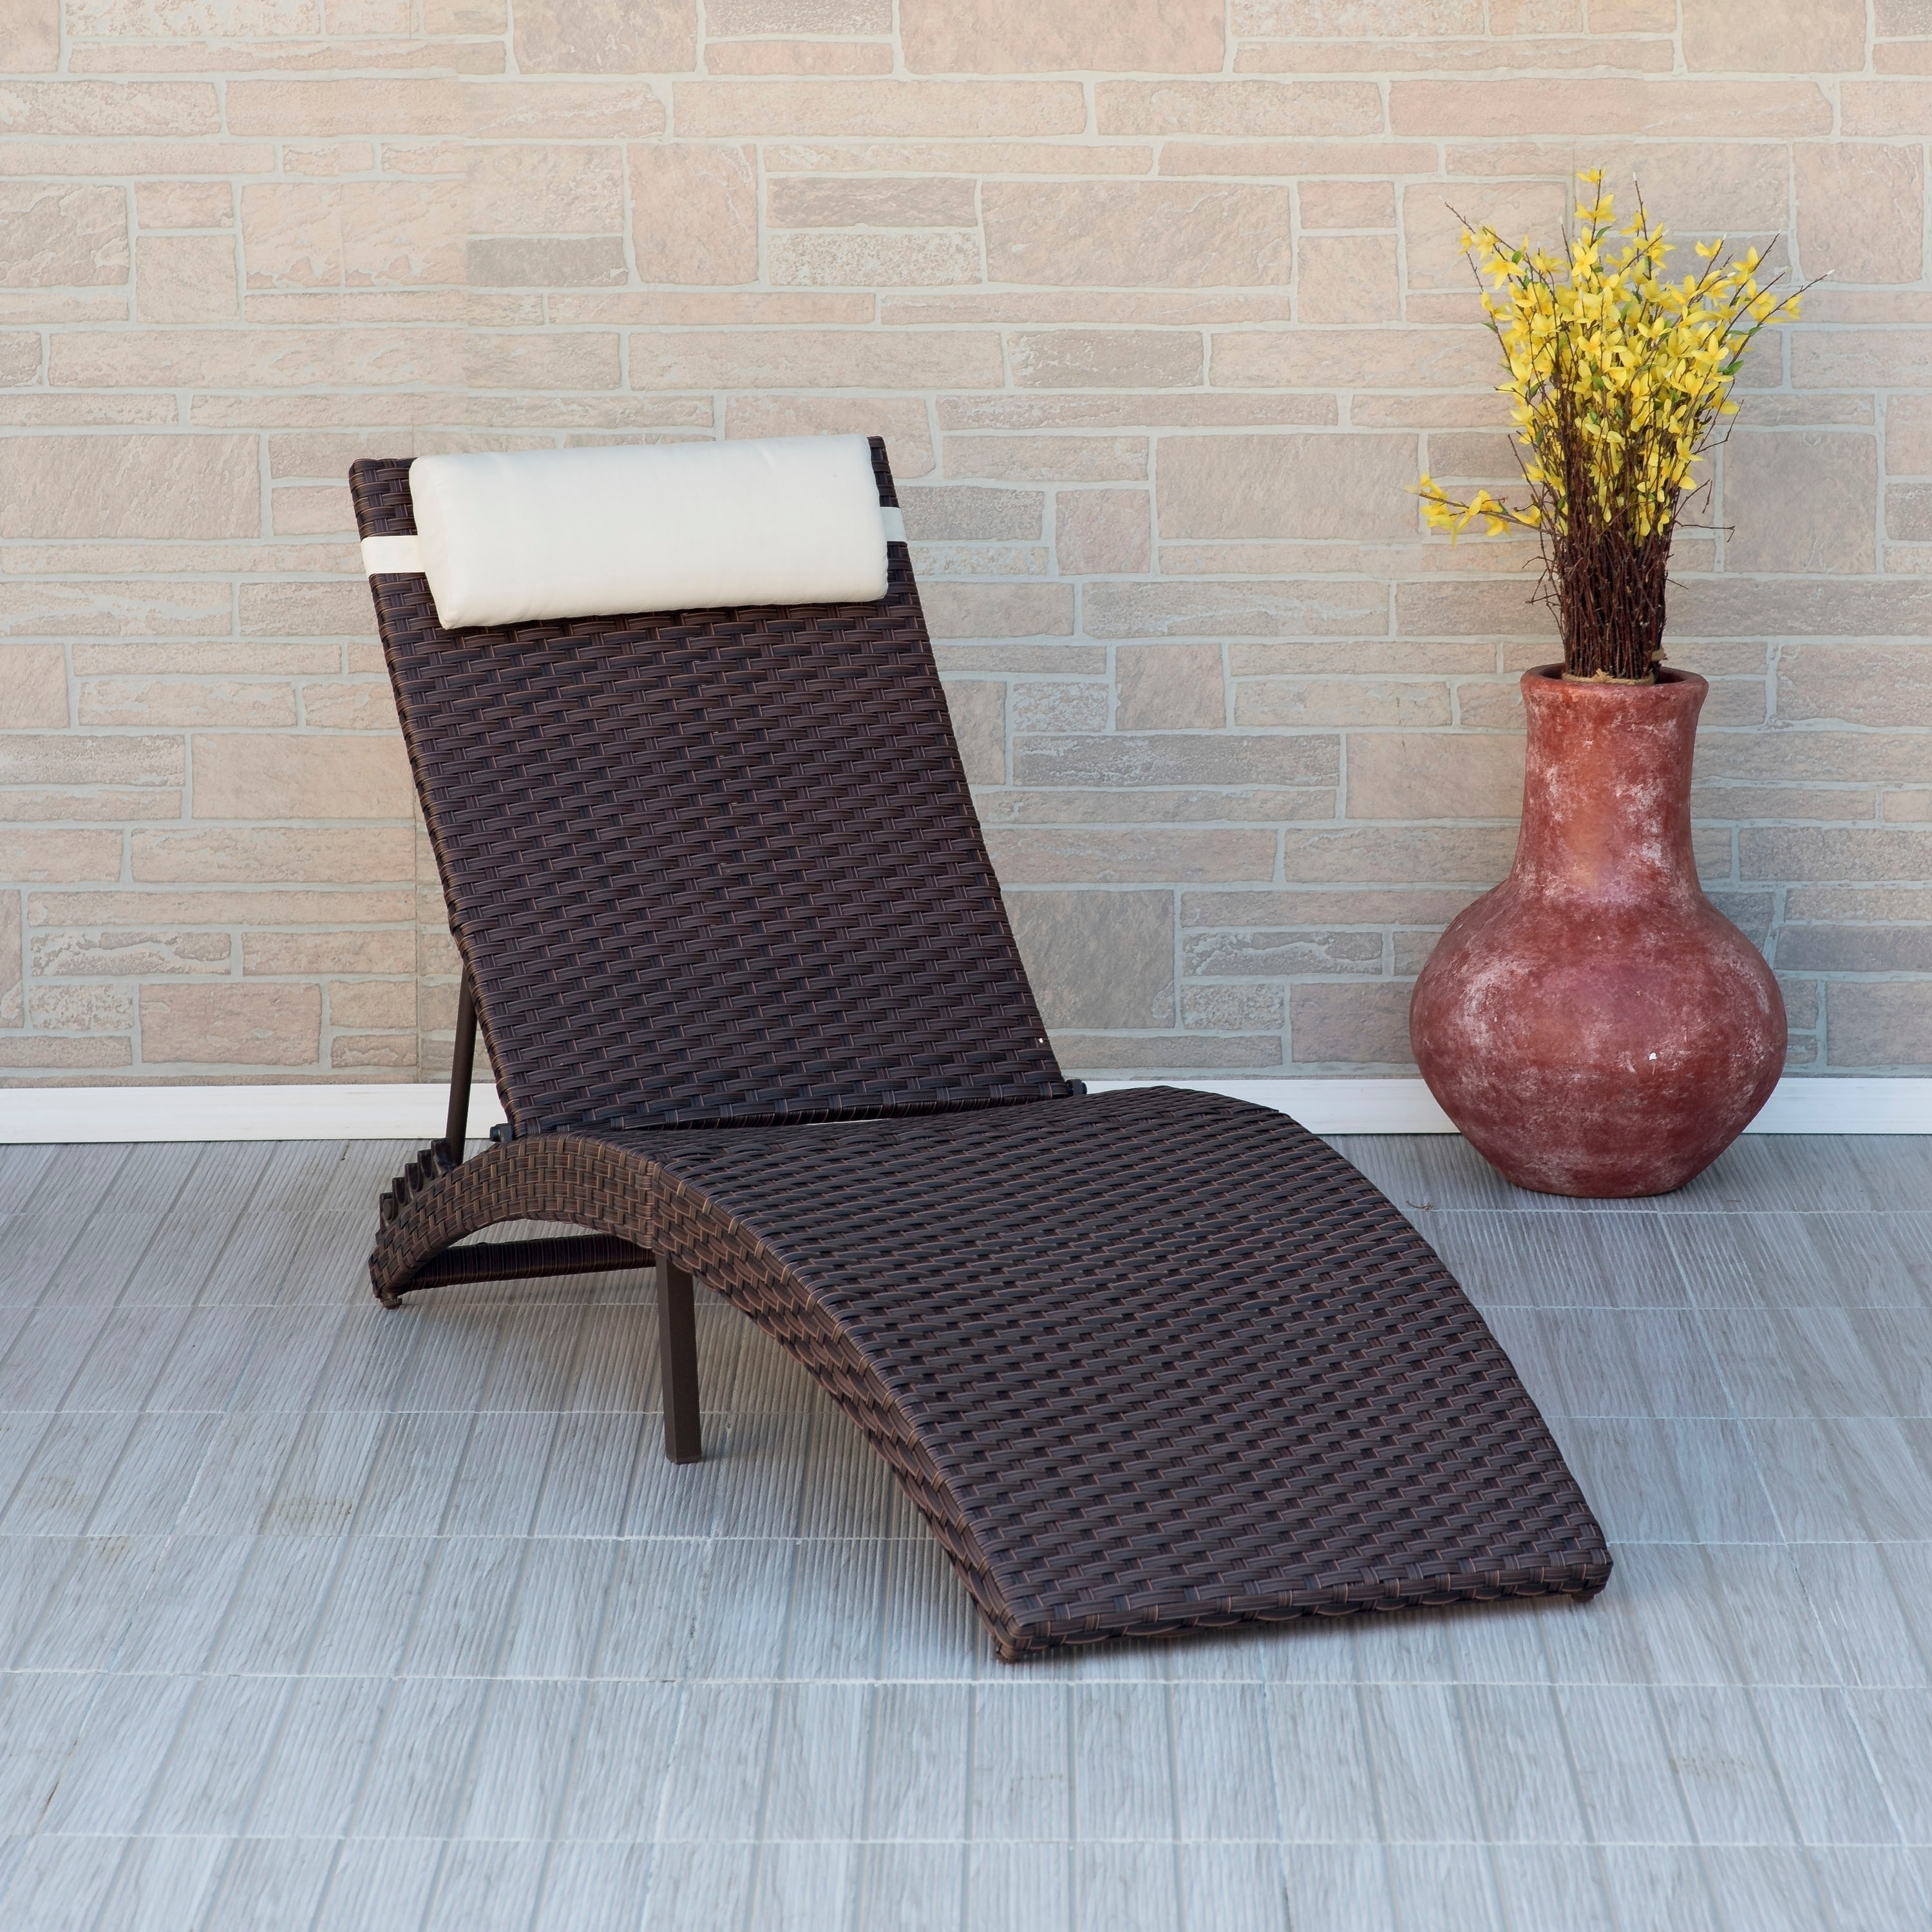 Shop Black Friday Deals On Alaganik Brown Folding Patio Chaise Lounger Chair By Havenside Home On Sale Overstock 20695481